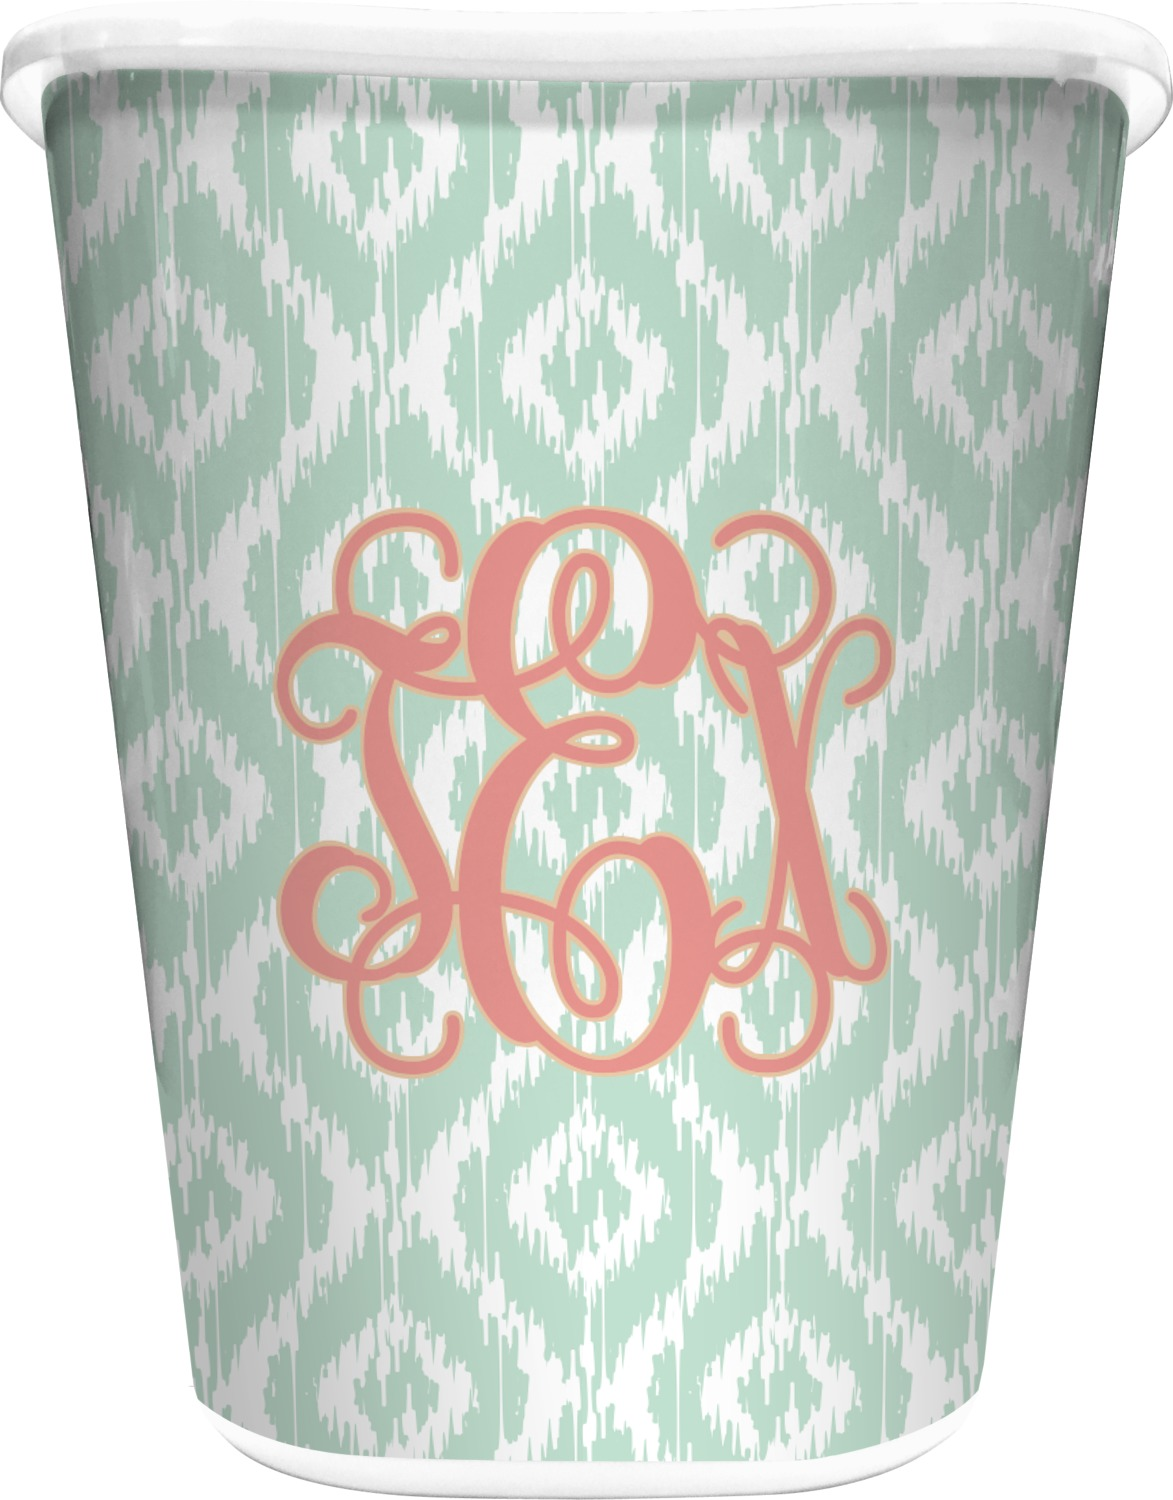 Monogram Waste Basket Personalized You Customize It